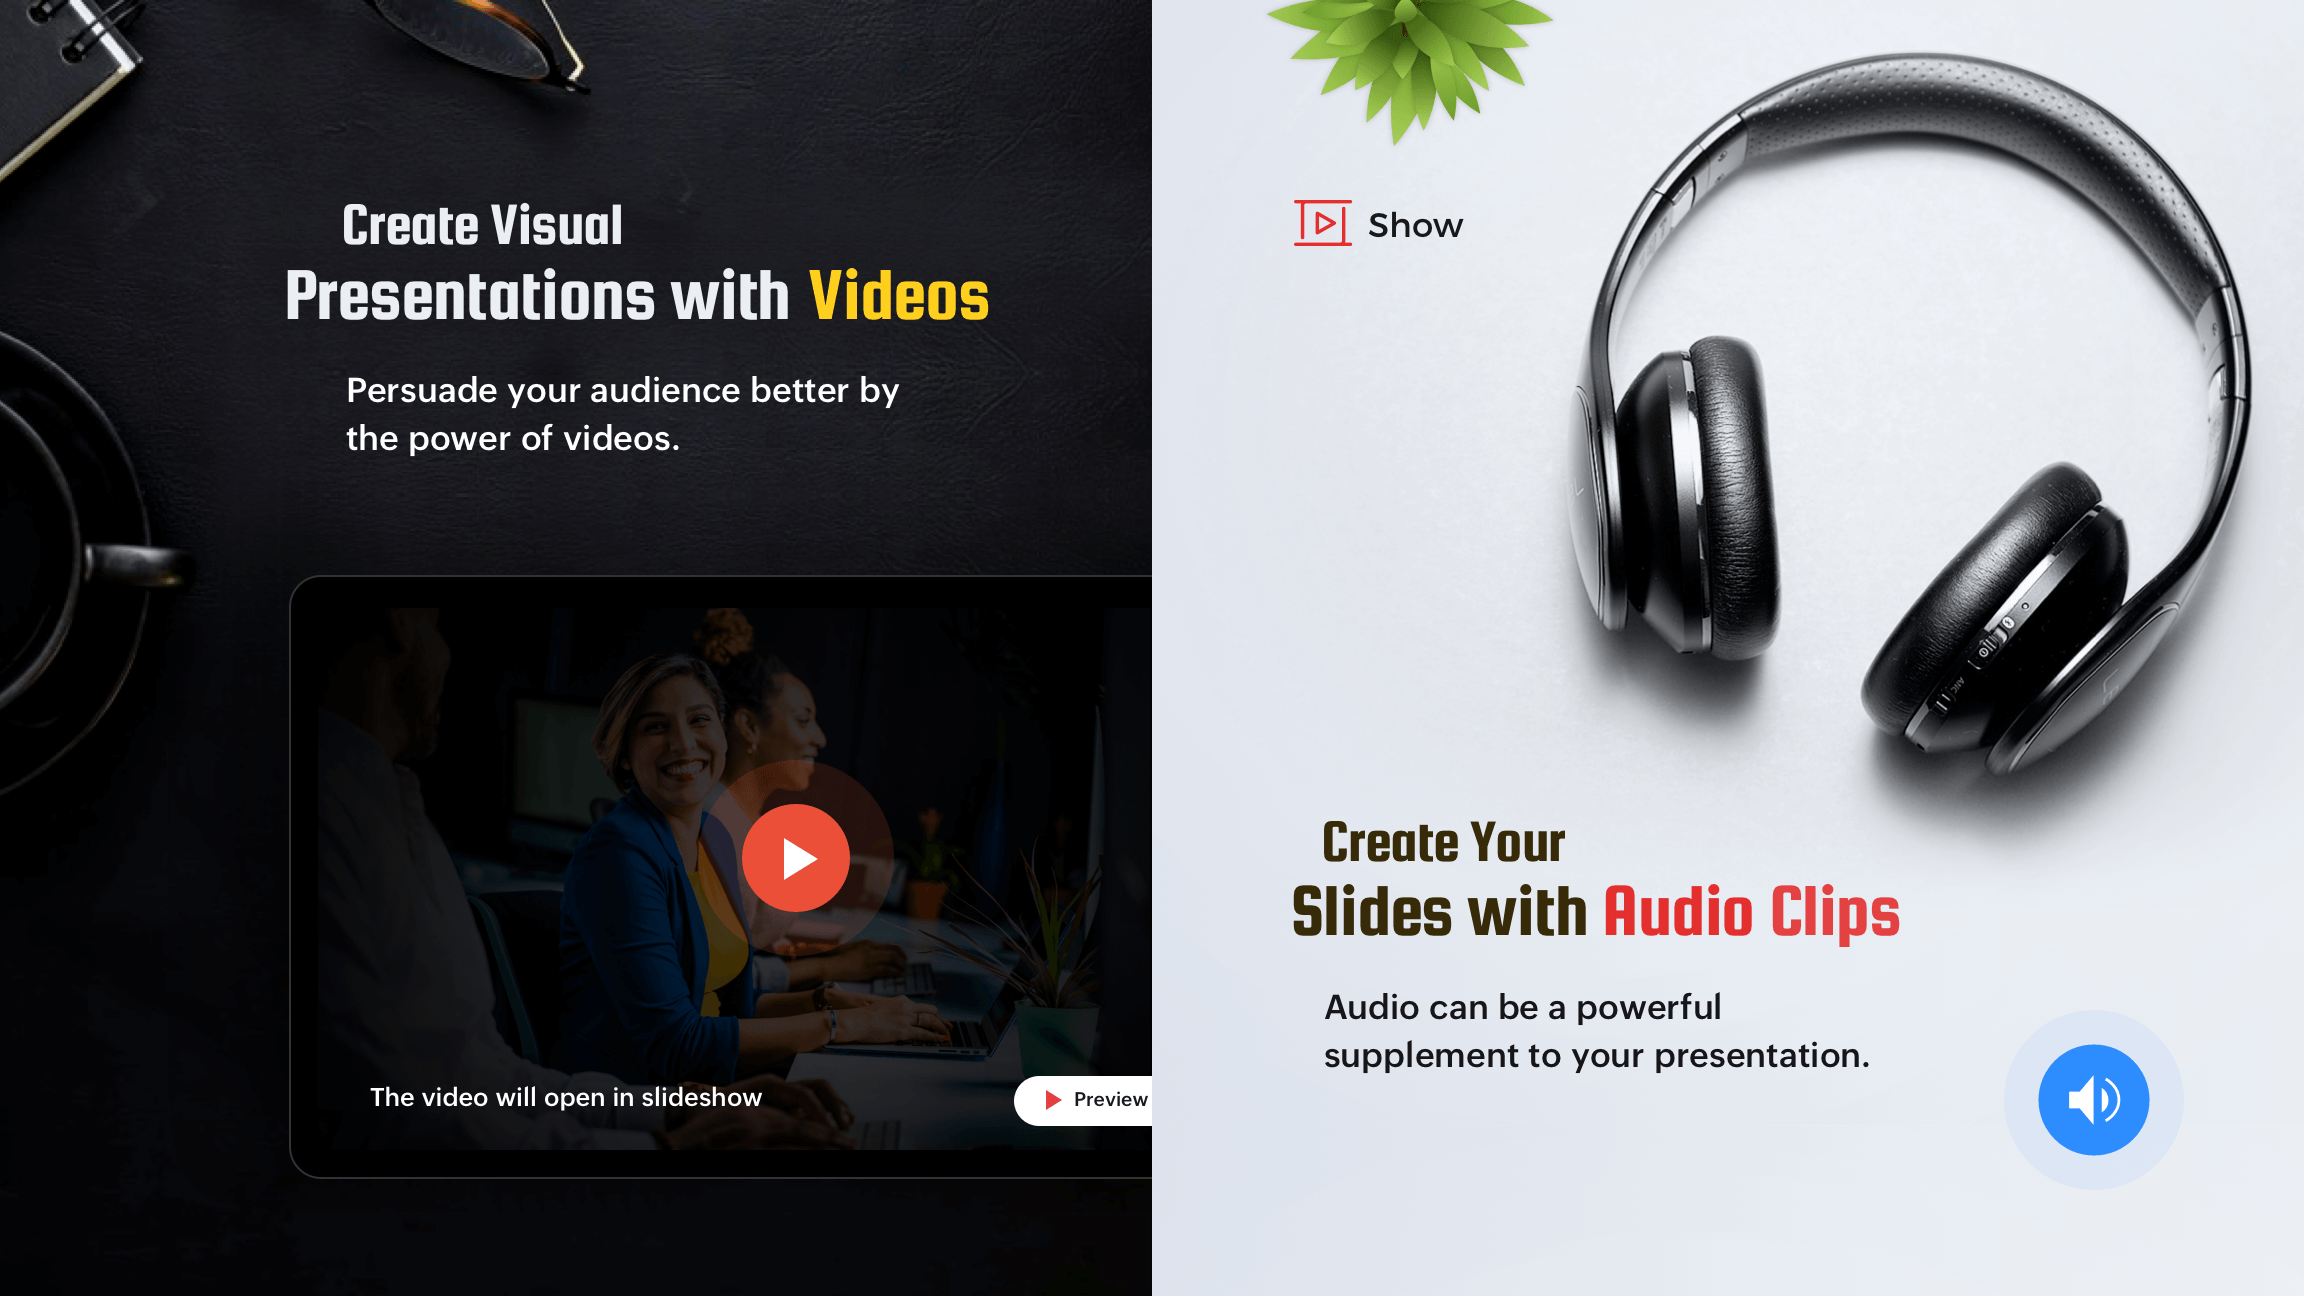 Enhance your presentations with audio and video